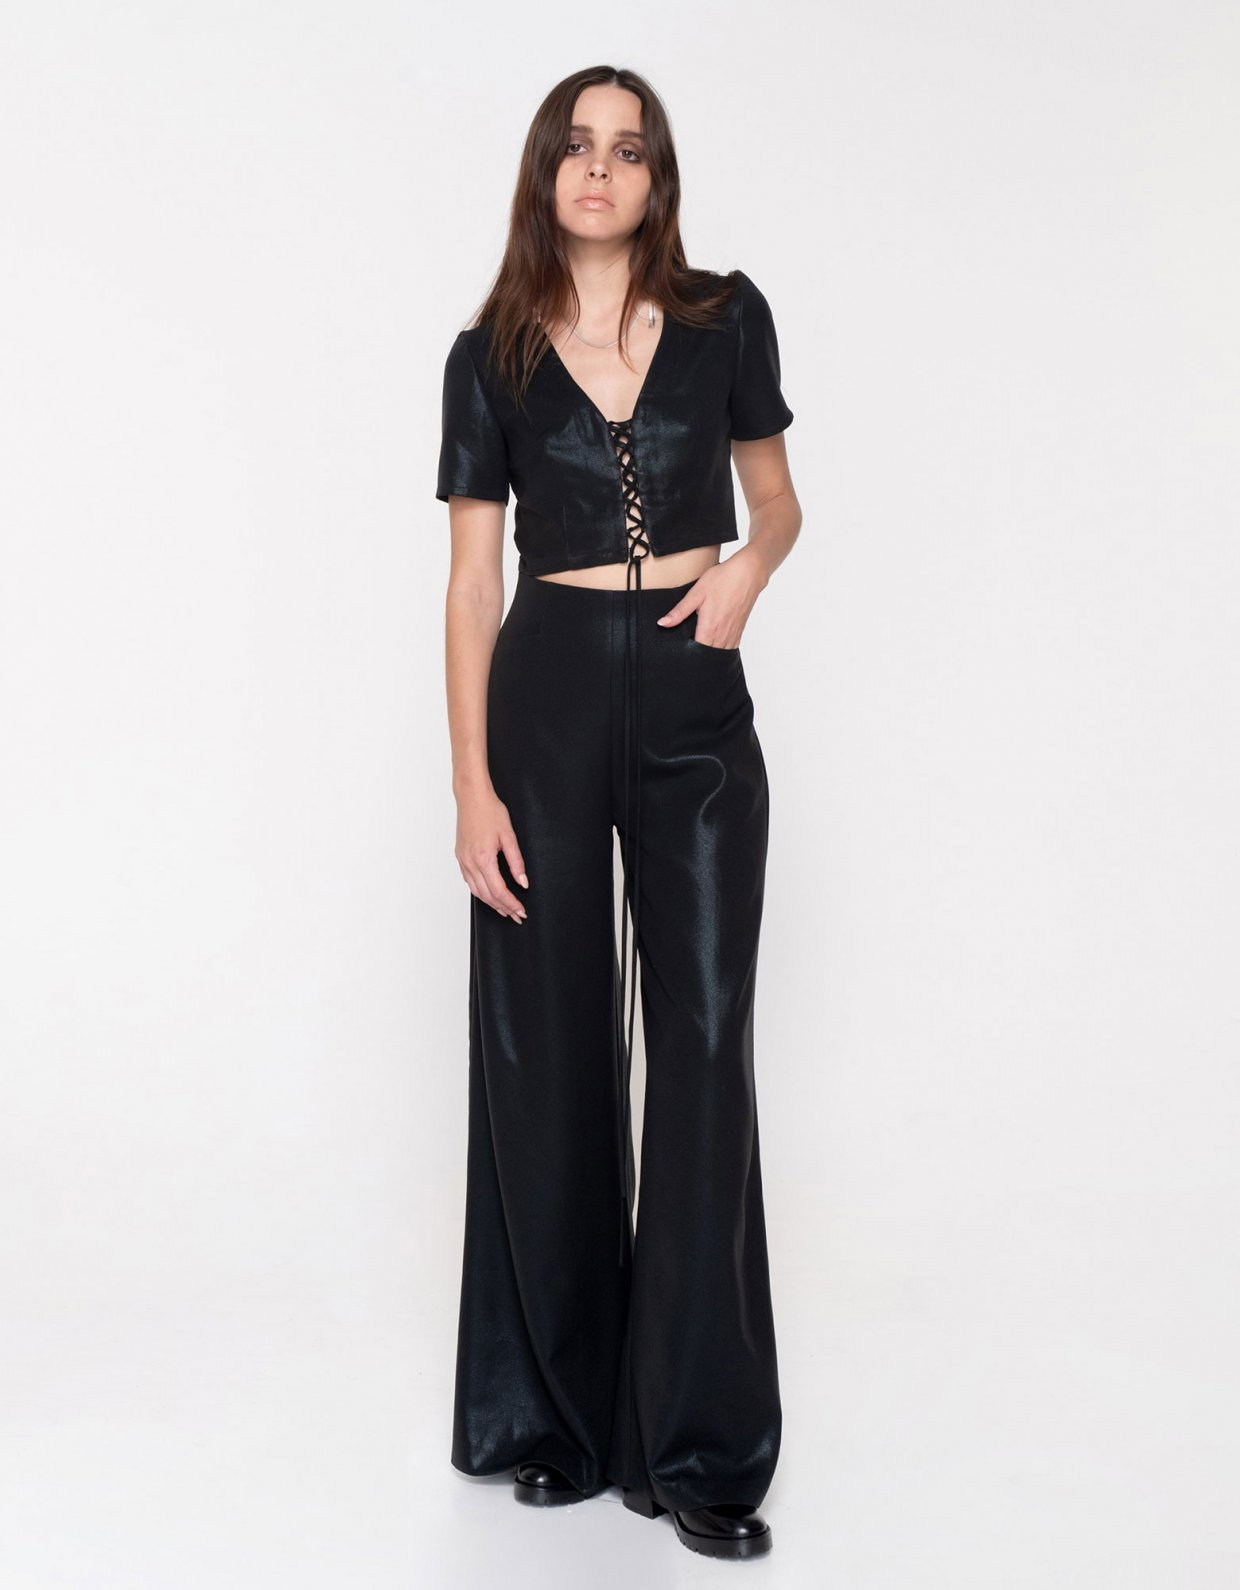 Nadia Rapti Metallic Black Sabbath pants